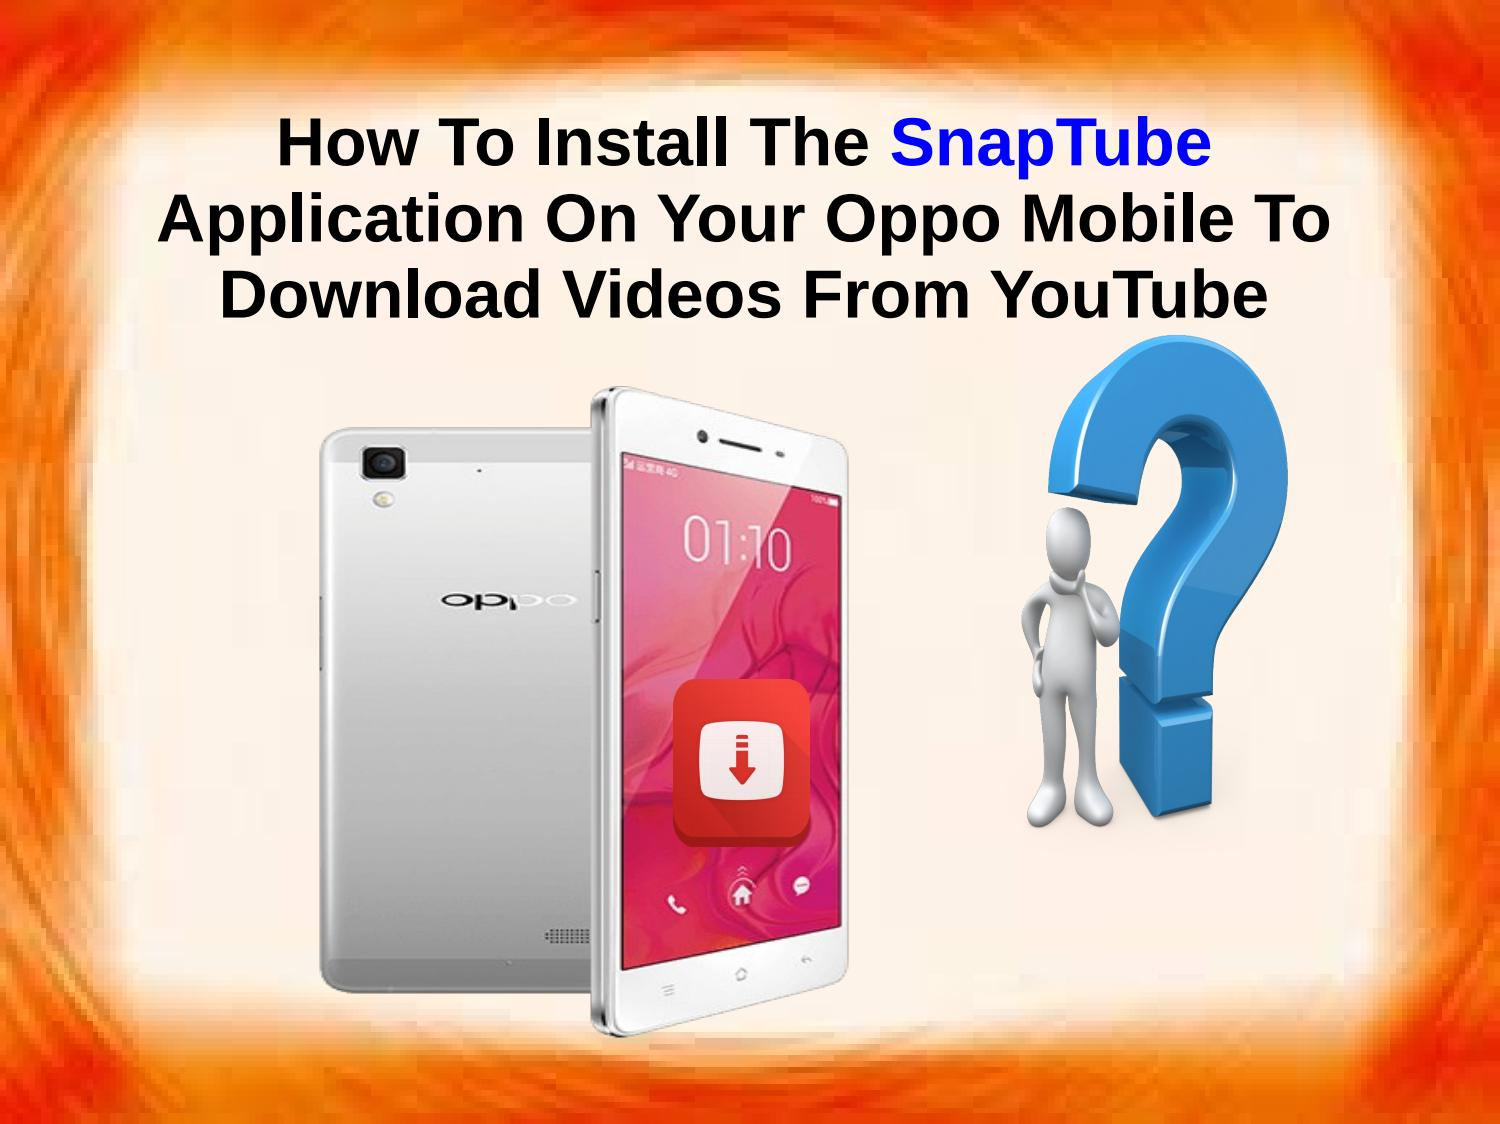 How To Install The SnapTube Application On Your Oppo Mobile To